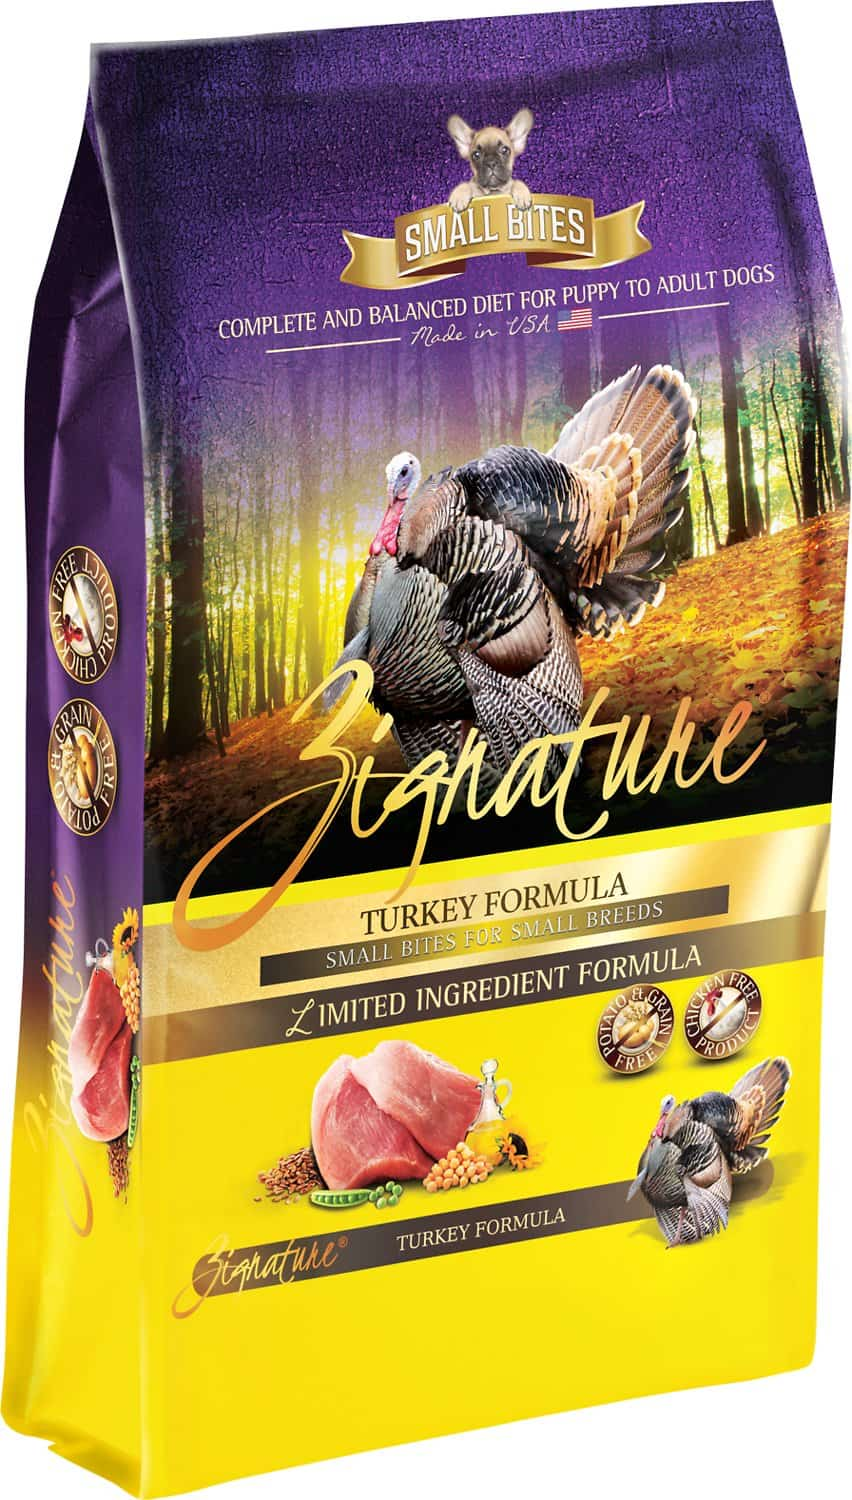 Zignature Dog Food Review 2021: Best Limited Ingredient Food? 12